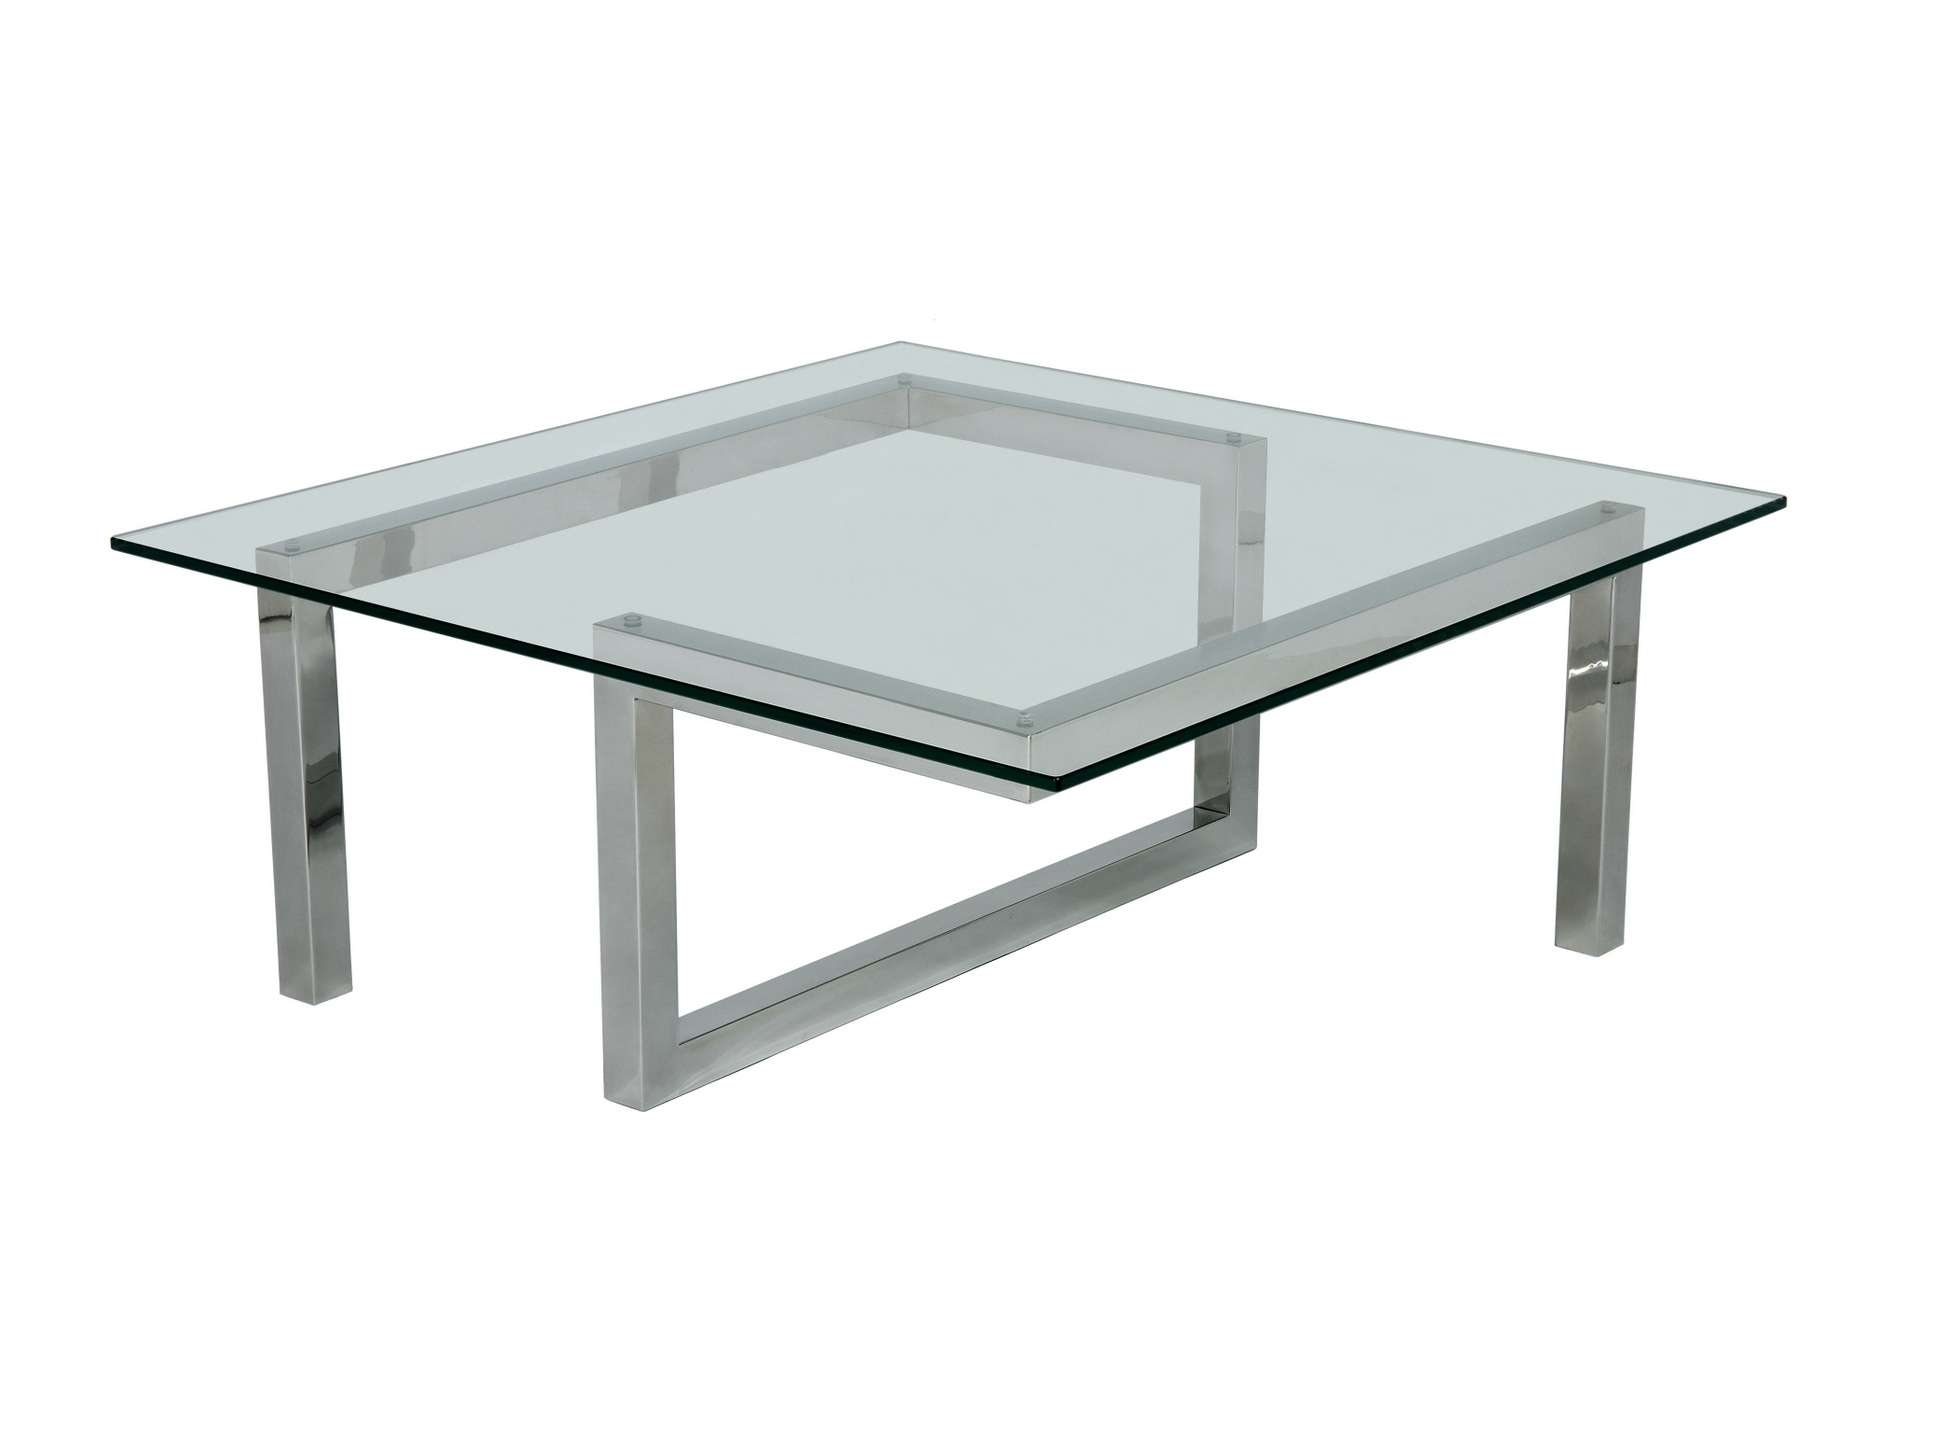 Current Square Glass Coffee Tables Inside Square Glass Coffee Table For Living Room Decoration – Ruchi Designs (View 6 of 20)